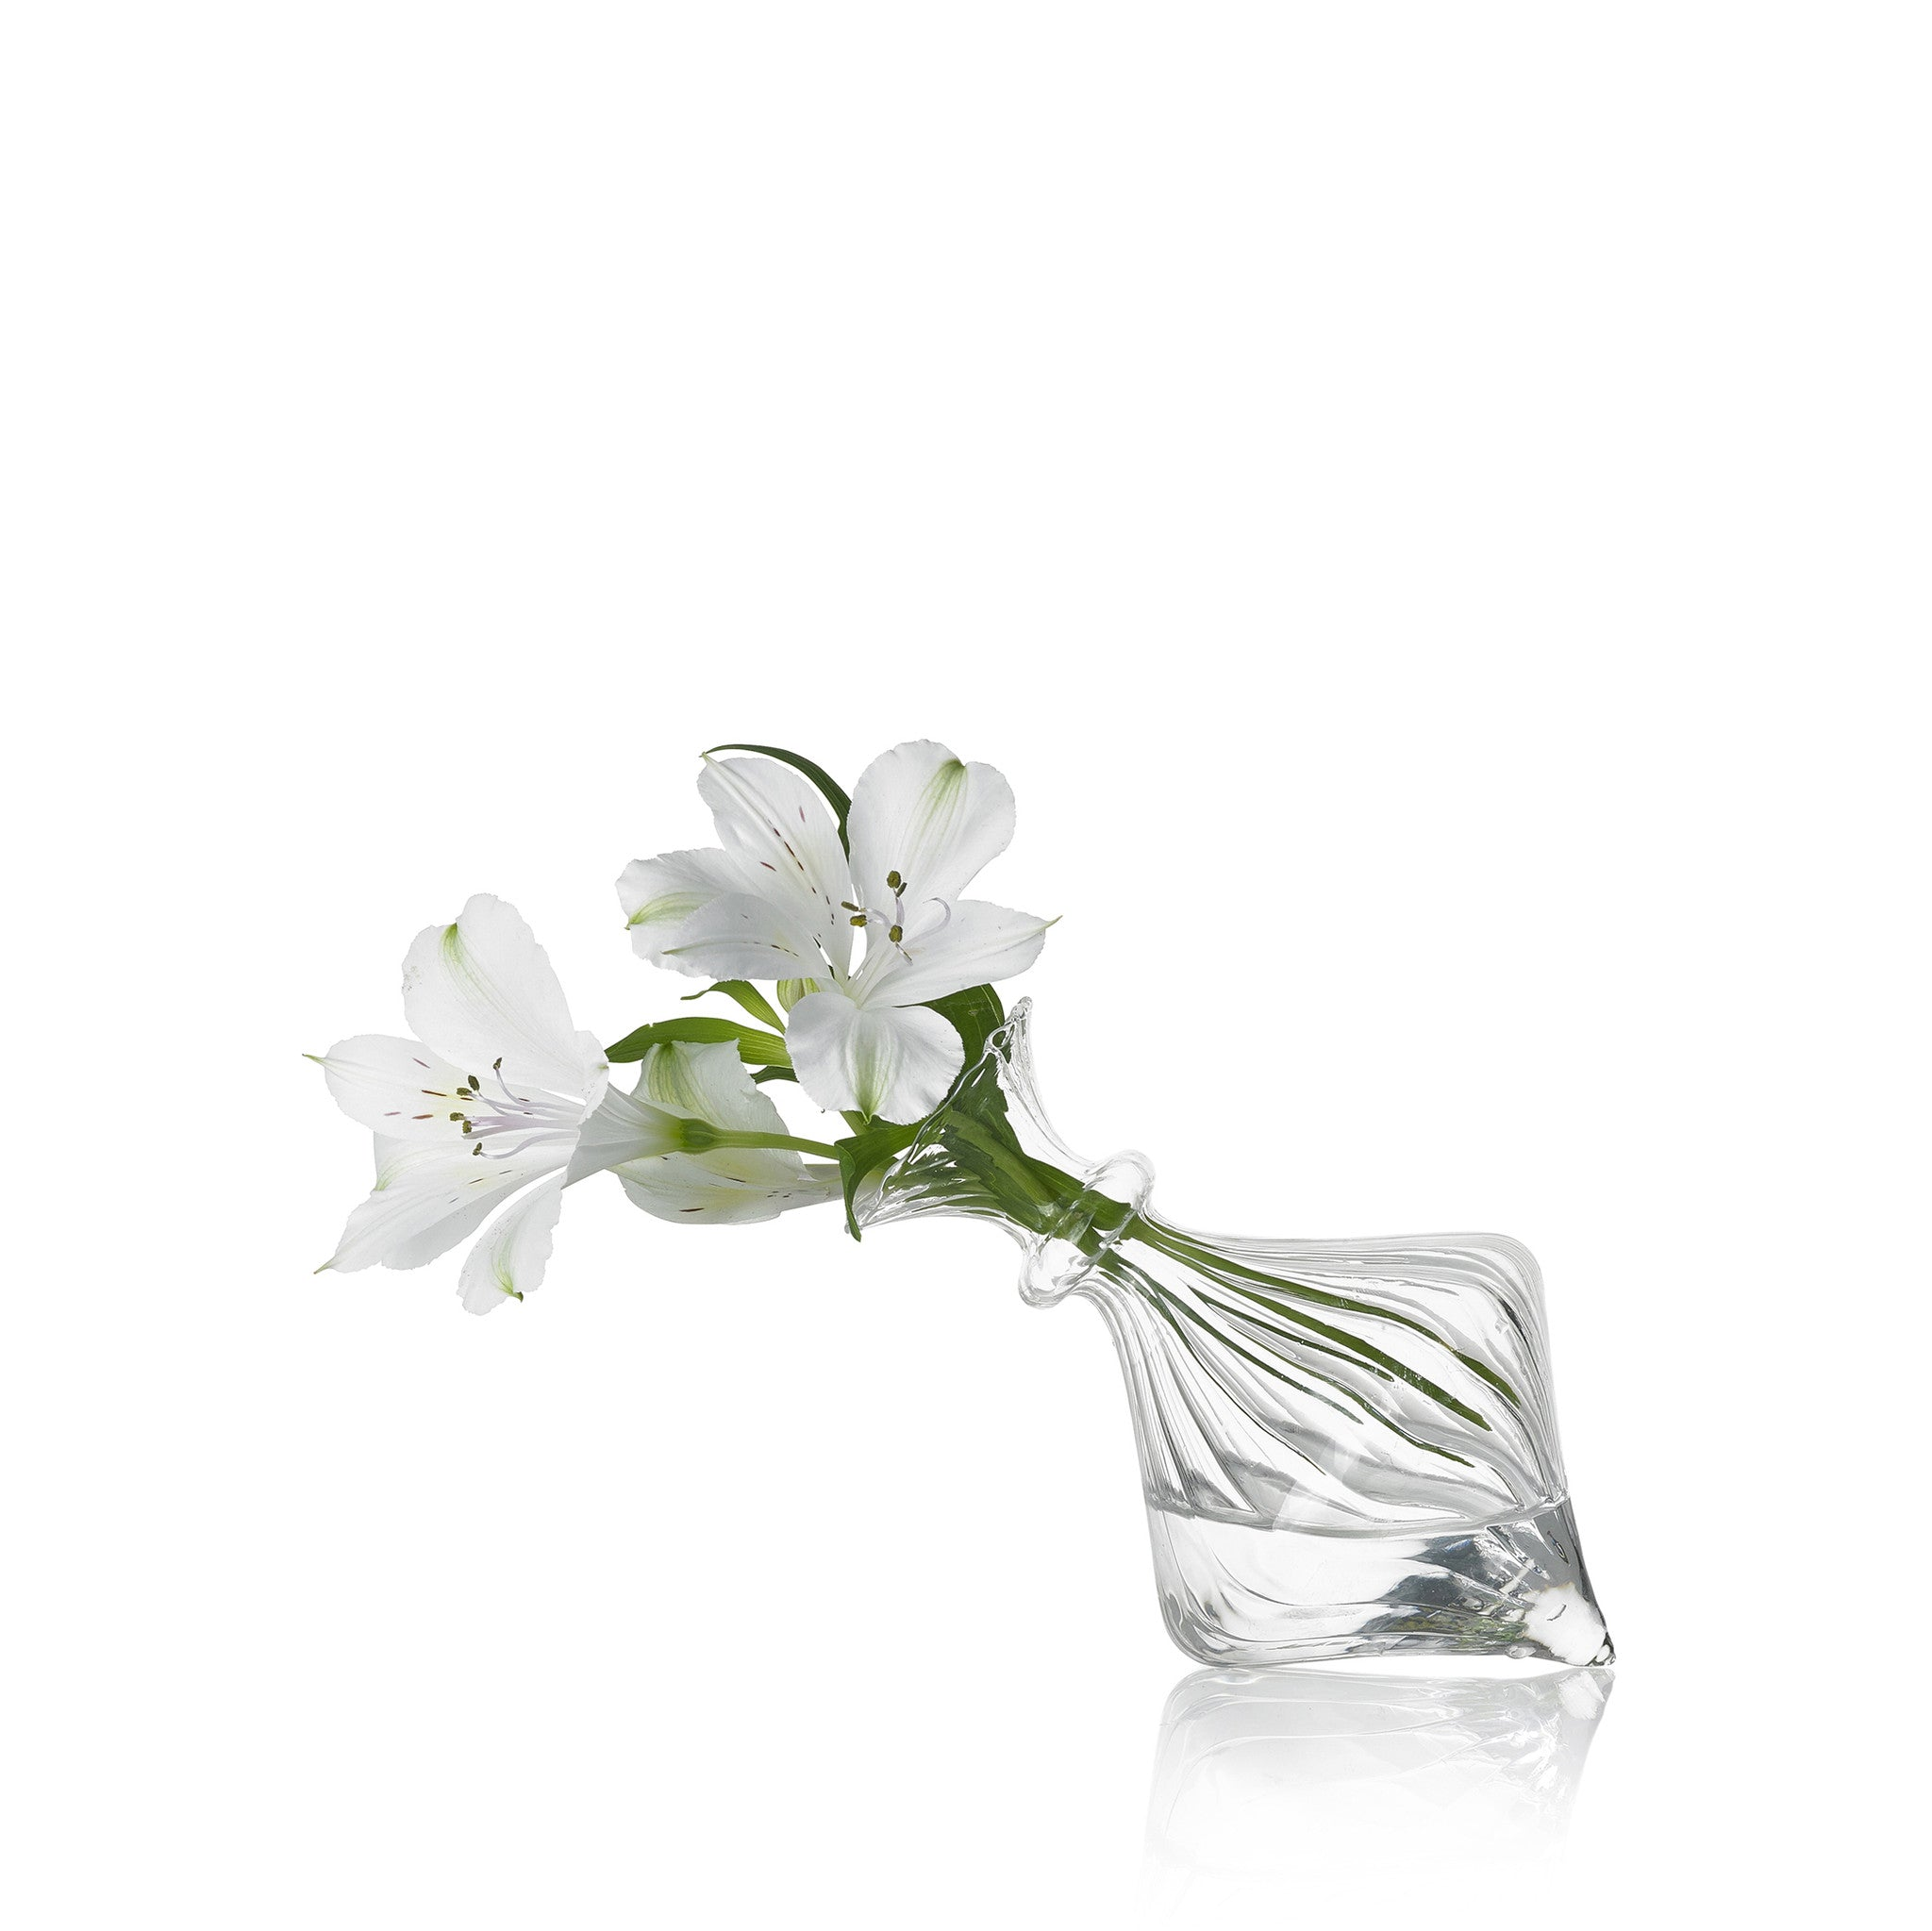 Set of Two Glass Flower Vases Without Foot - Mia